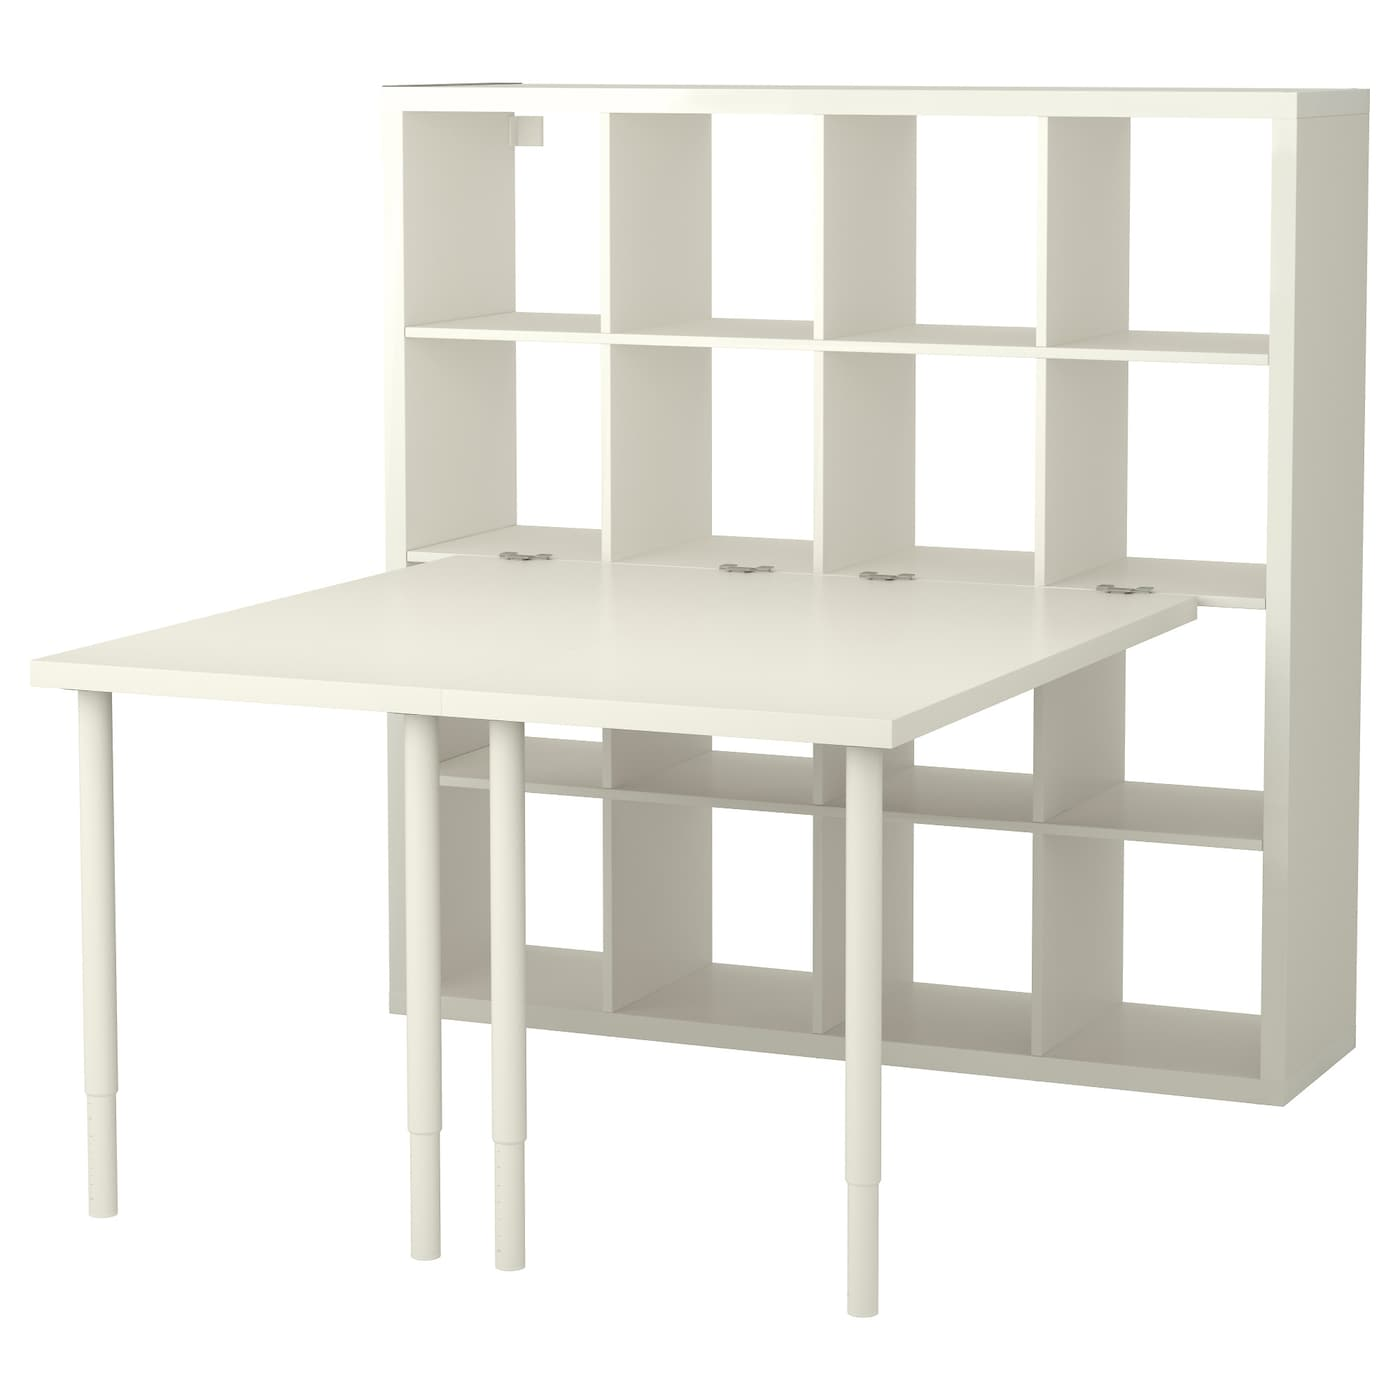 kallax combinaison bureau blanc 147x147 cm ikea. Black Bedroom Furniture Sets. Home Design Ideas